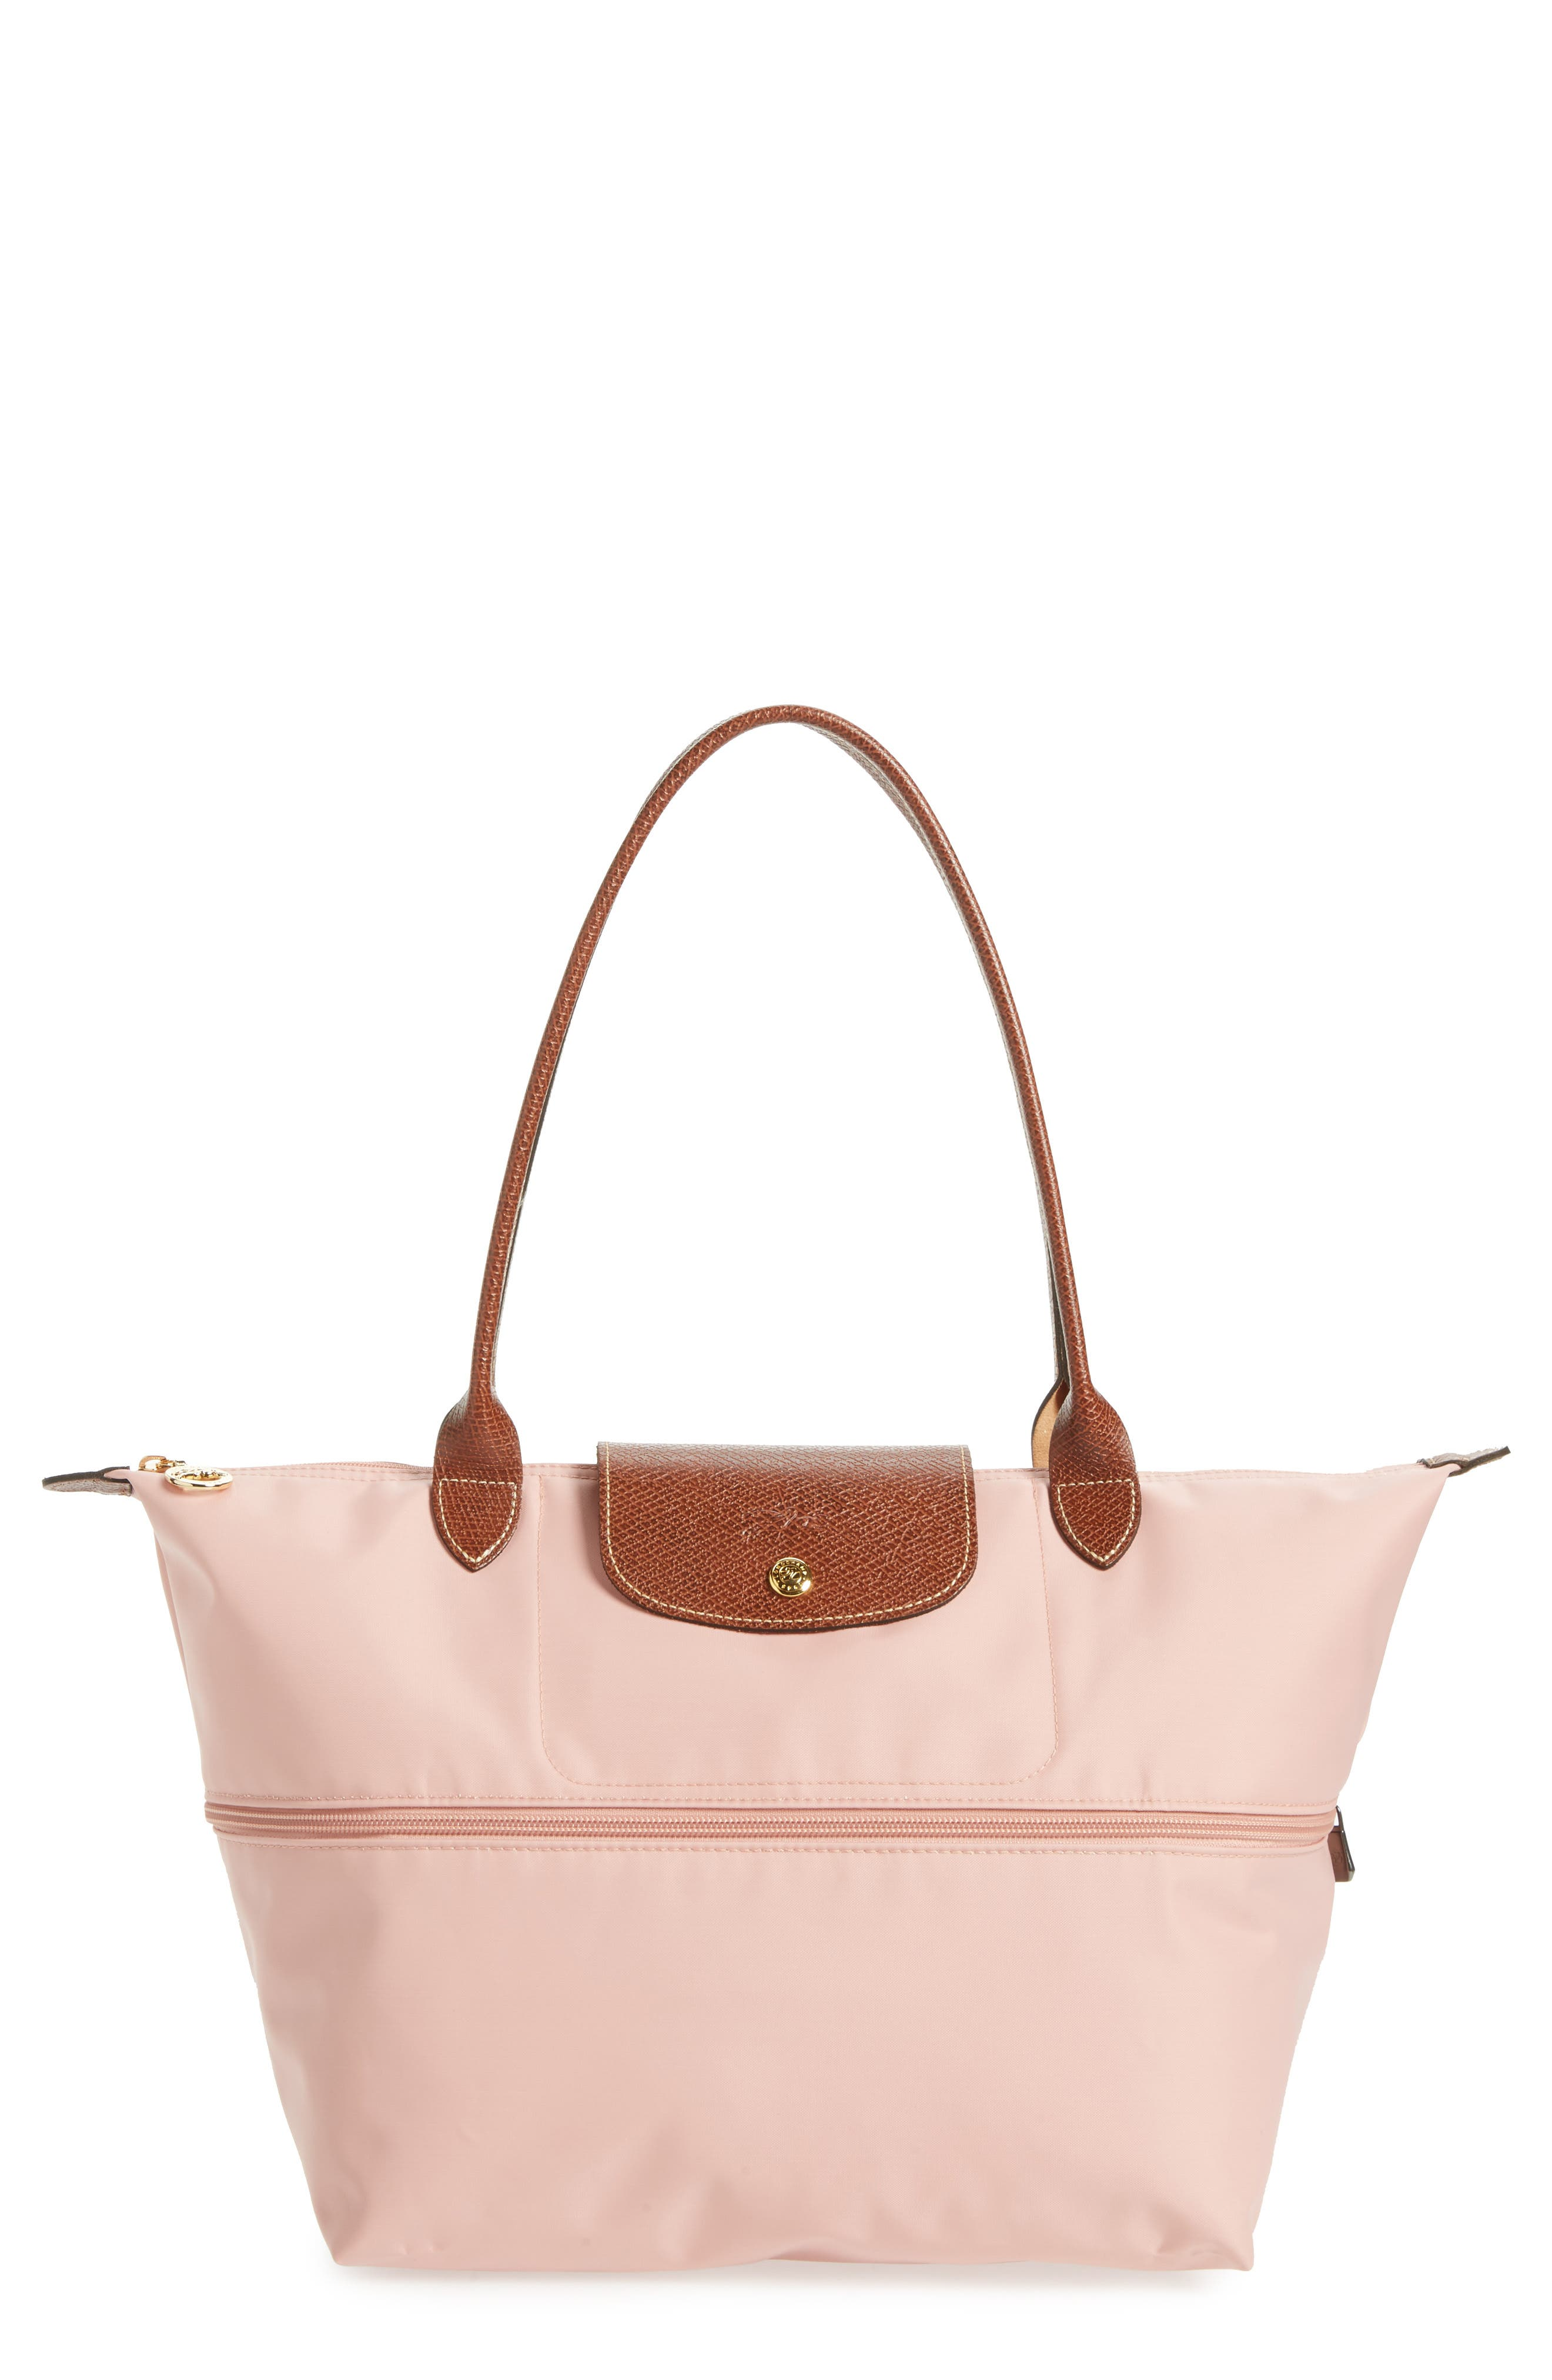 Alternate Image 1 Selected - Longchamp 'Le Pliage' Expandable Tote (Nordstrom Exclusive) (Nordstrom Exclusive)